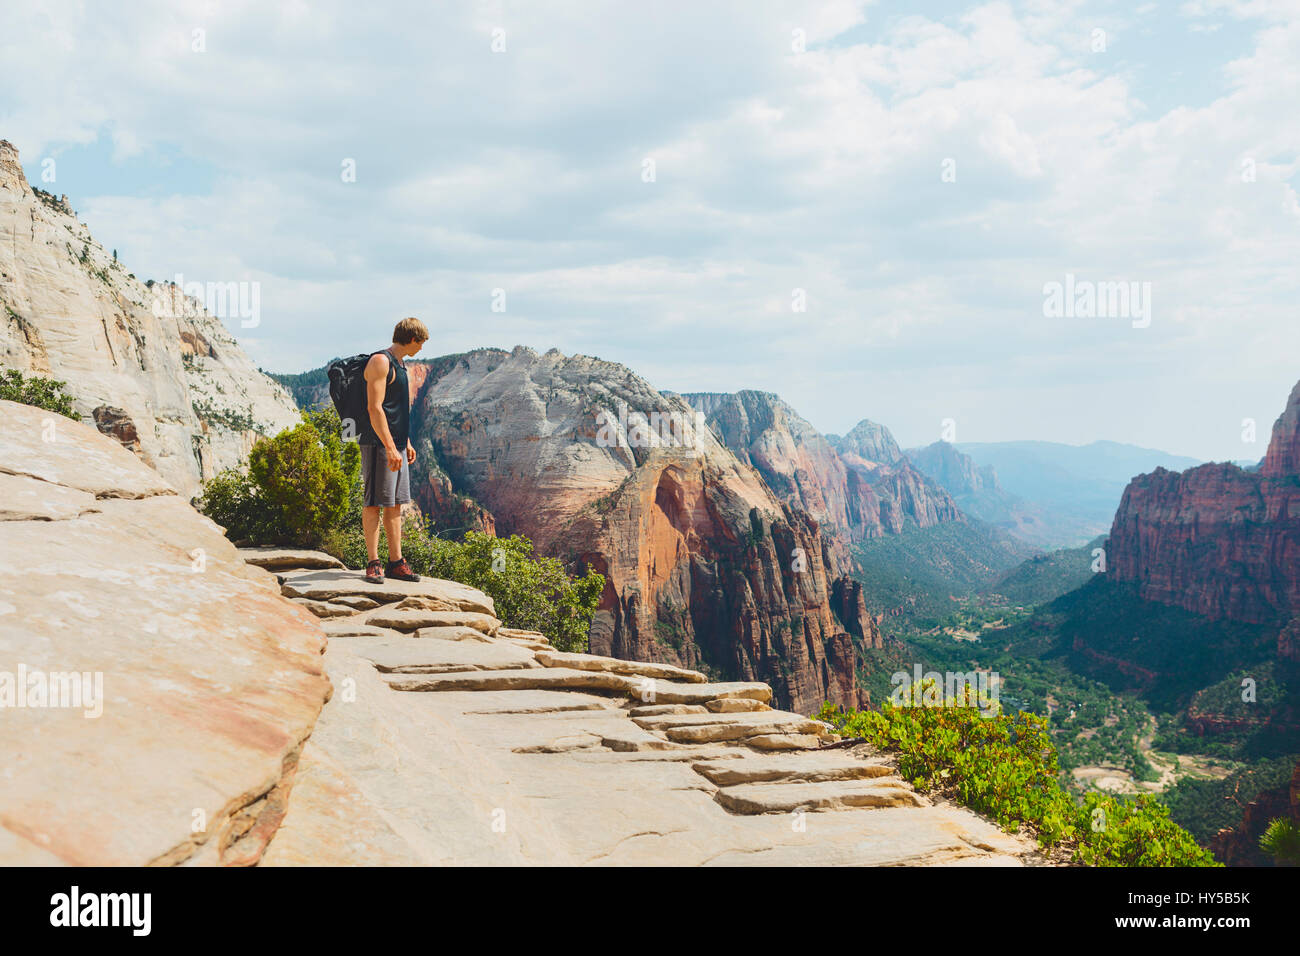 USA, Utah, Man looking at view in Zion National Park - Stock Image